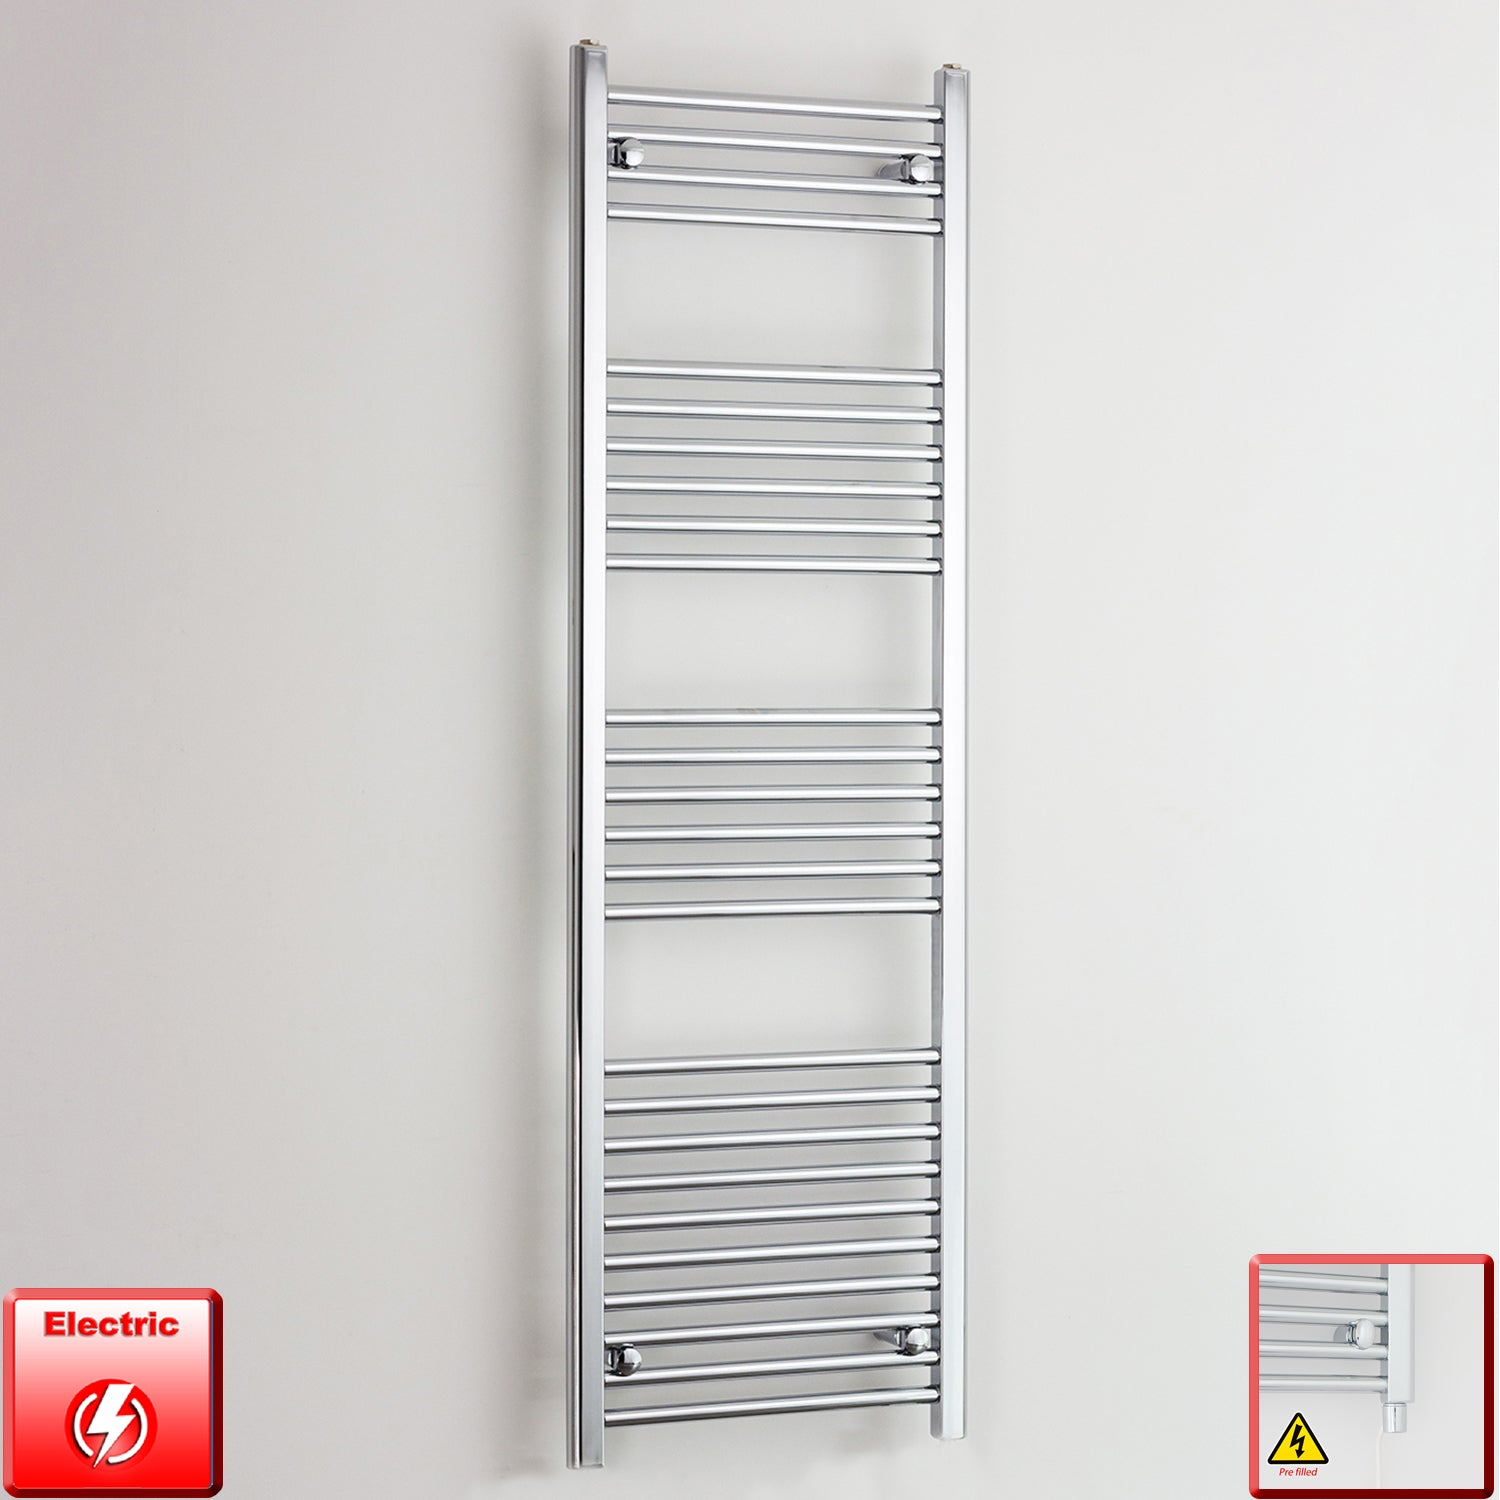 400mm Wide 1600mm High Straight Chrome Pre-Filled Electric Heated Towel Rail Radiator HTR,Straight / Single Heat Element